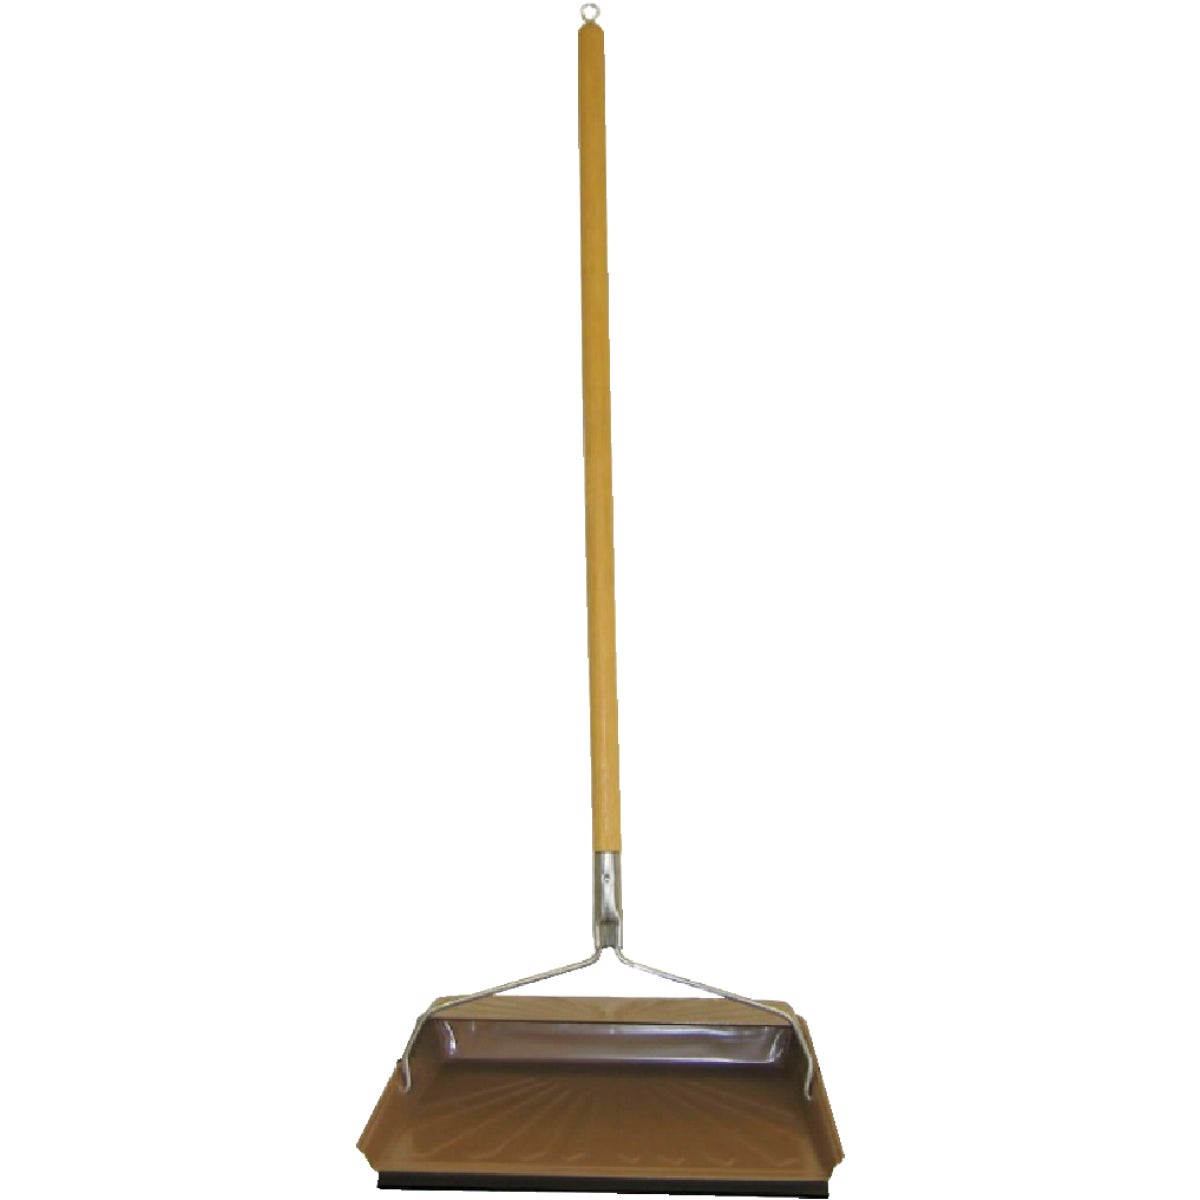 LONG HANDLE DUSTPAN - 240S-10PK by Fulton Corp